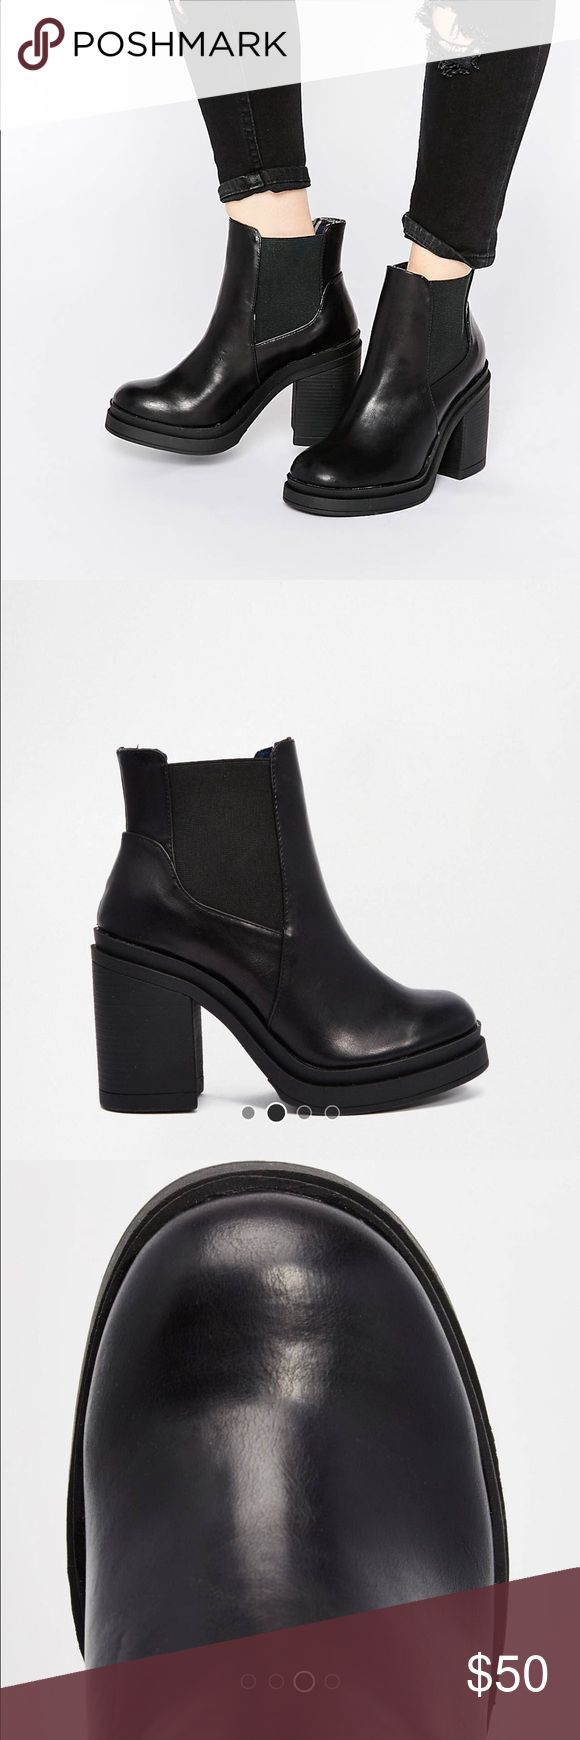 New Look Chunky Heeled boots size 8 Worn once inside. In excellent condition. Basically brand new without tags/ box. Size 8. Reasonable offers welcome. New Look Shoes Ankle Boots & Booties